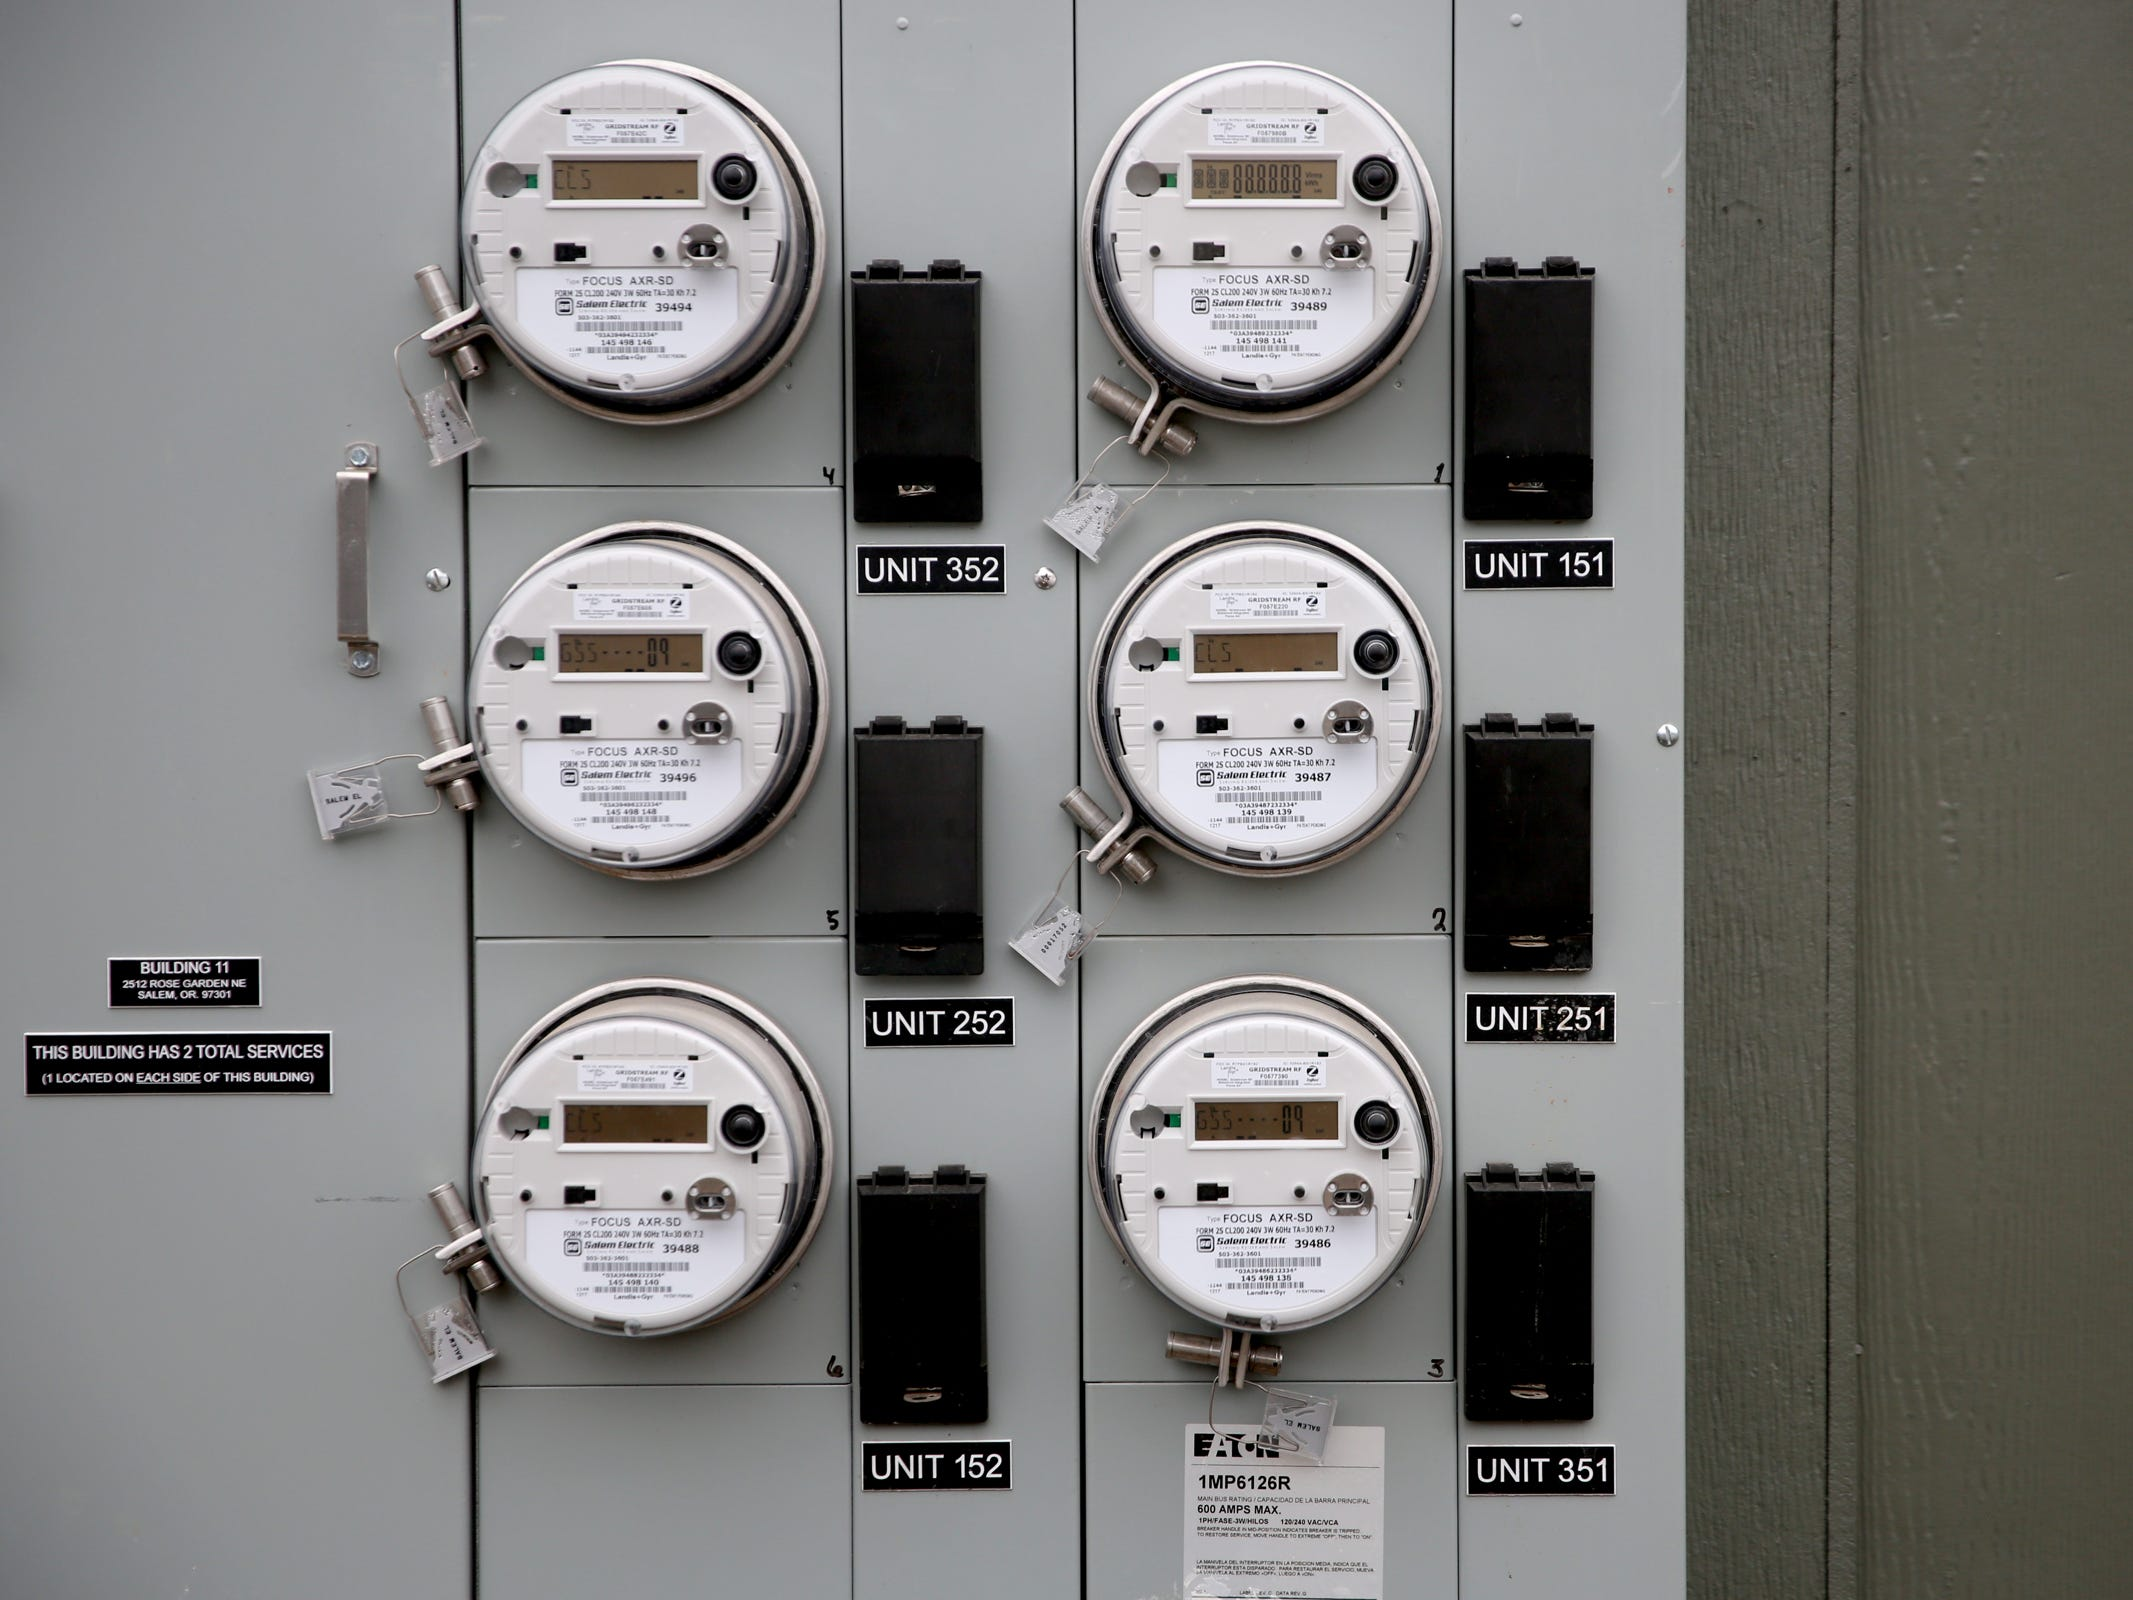 Electrical meters at the Cornerstone Apartments in Salem on Wednesday, Jan. 16, 2019. The state is looking to reduce the energy burden for low-income Oregonians, including tenants at Cornerstone, who must live at or less than 60 percent of the area's median household income.